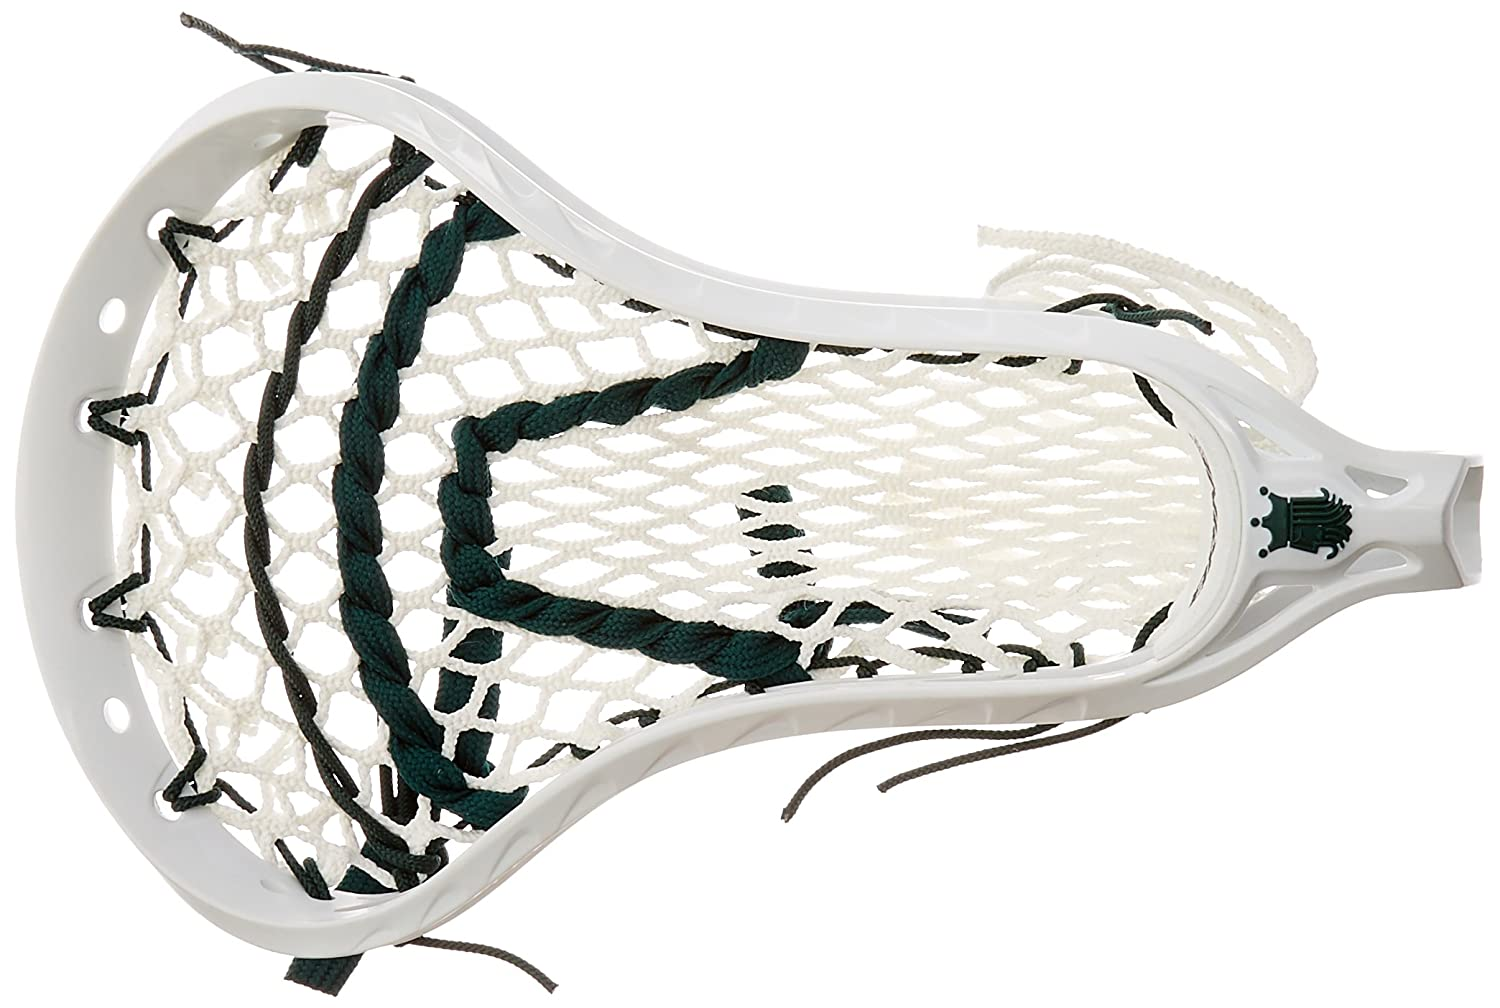 Brine Clutch Elite Lacrosse Head